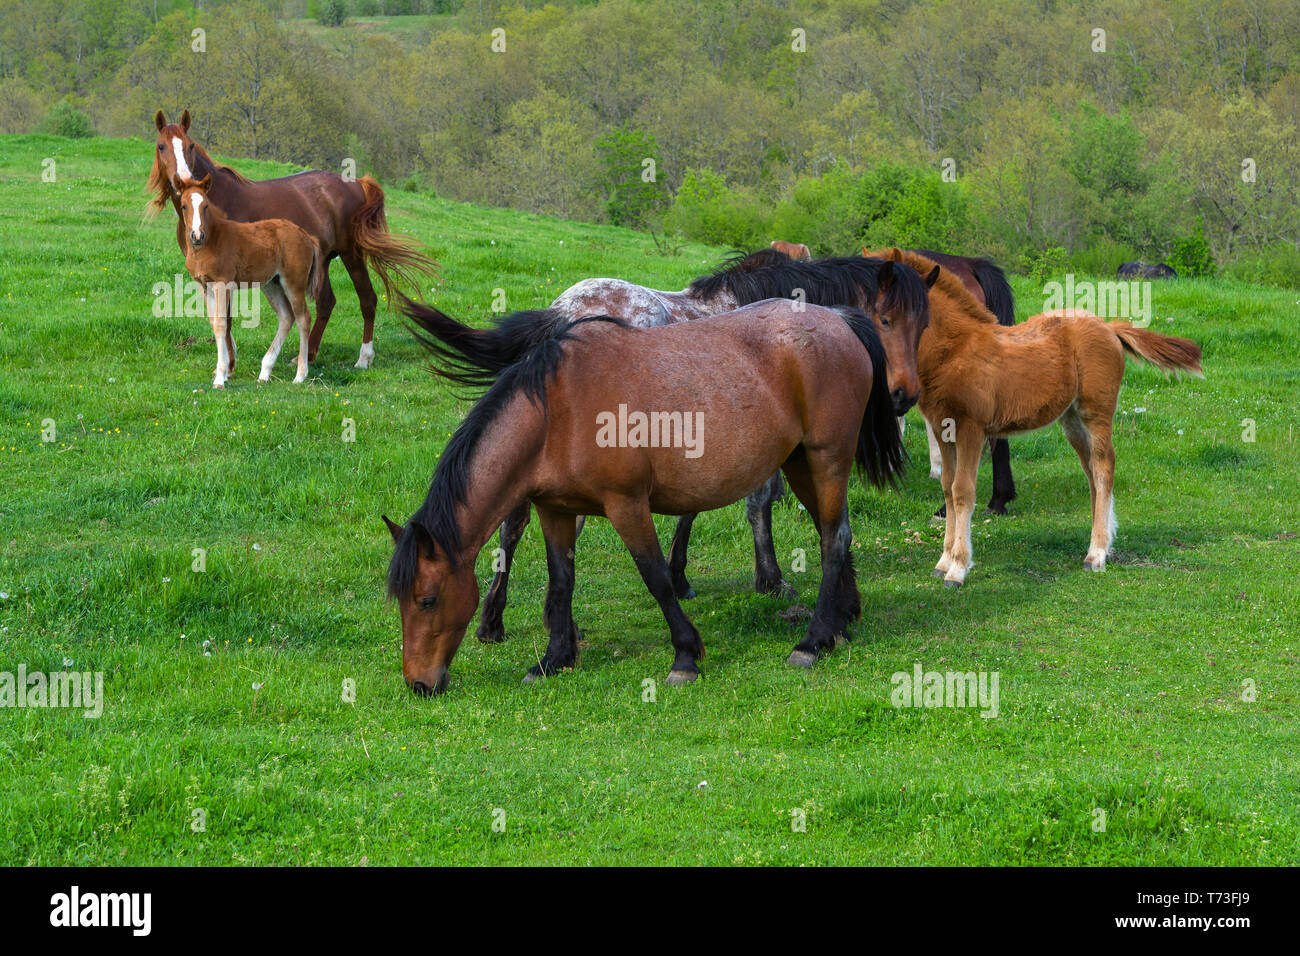 A herd of horses grazing on a green mountain meadow in Strandzha mountain, Bulgaria. Stock Photo